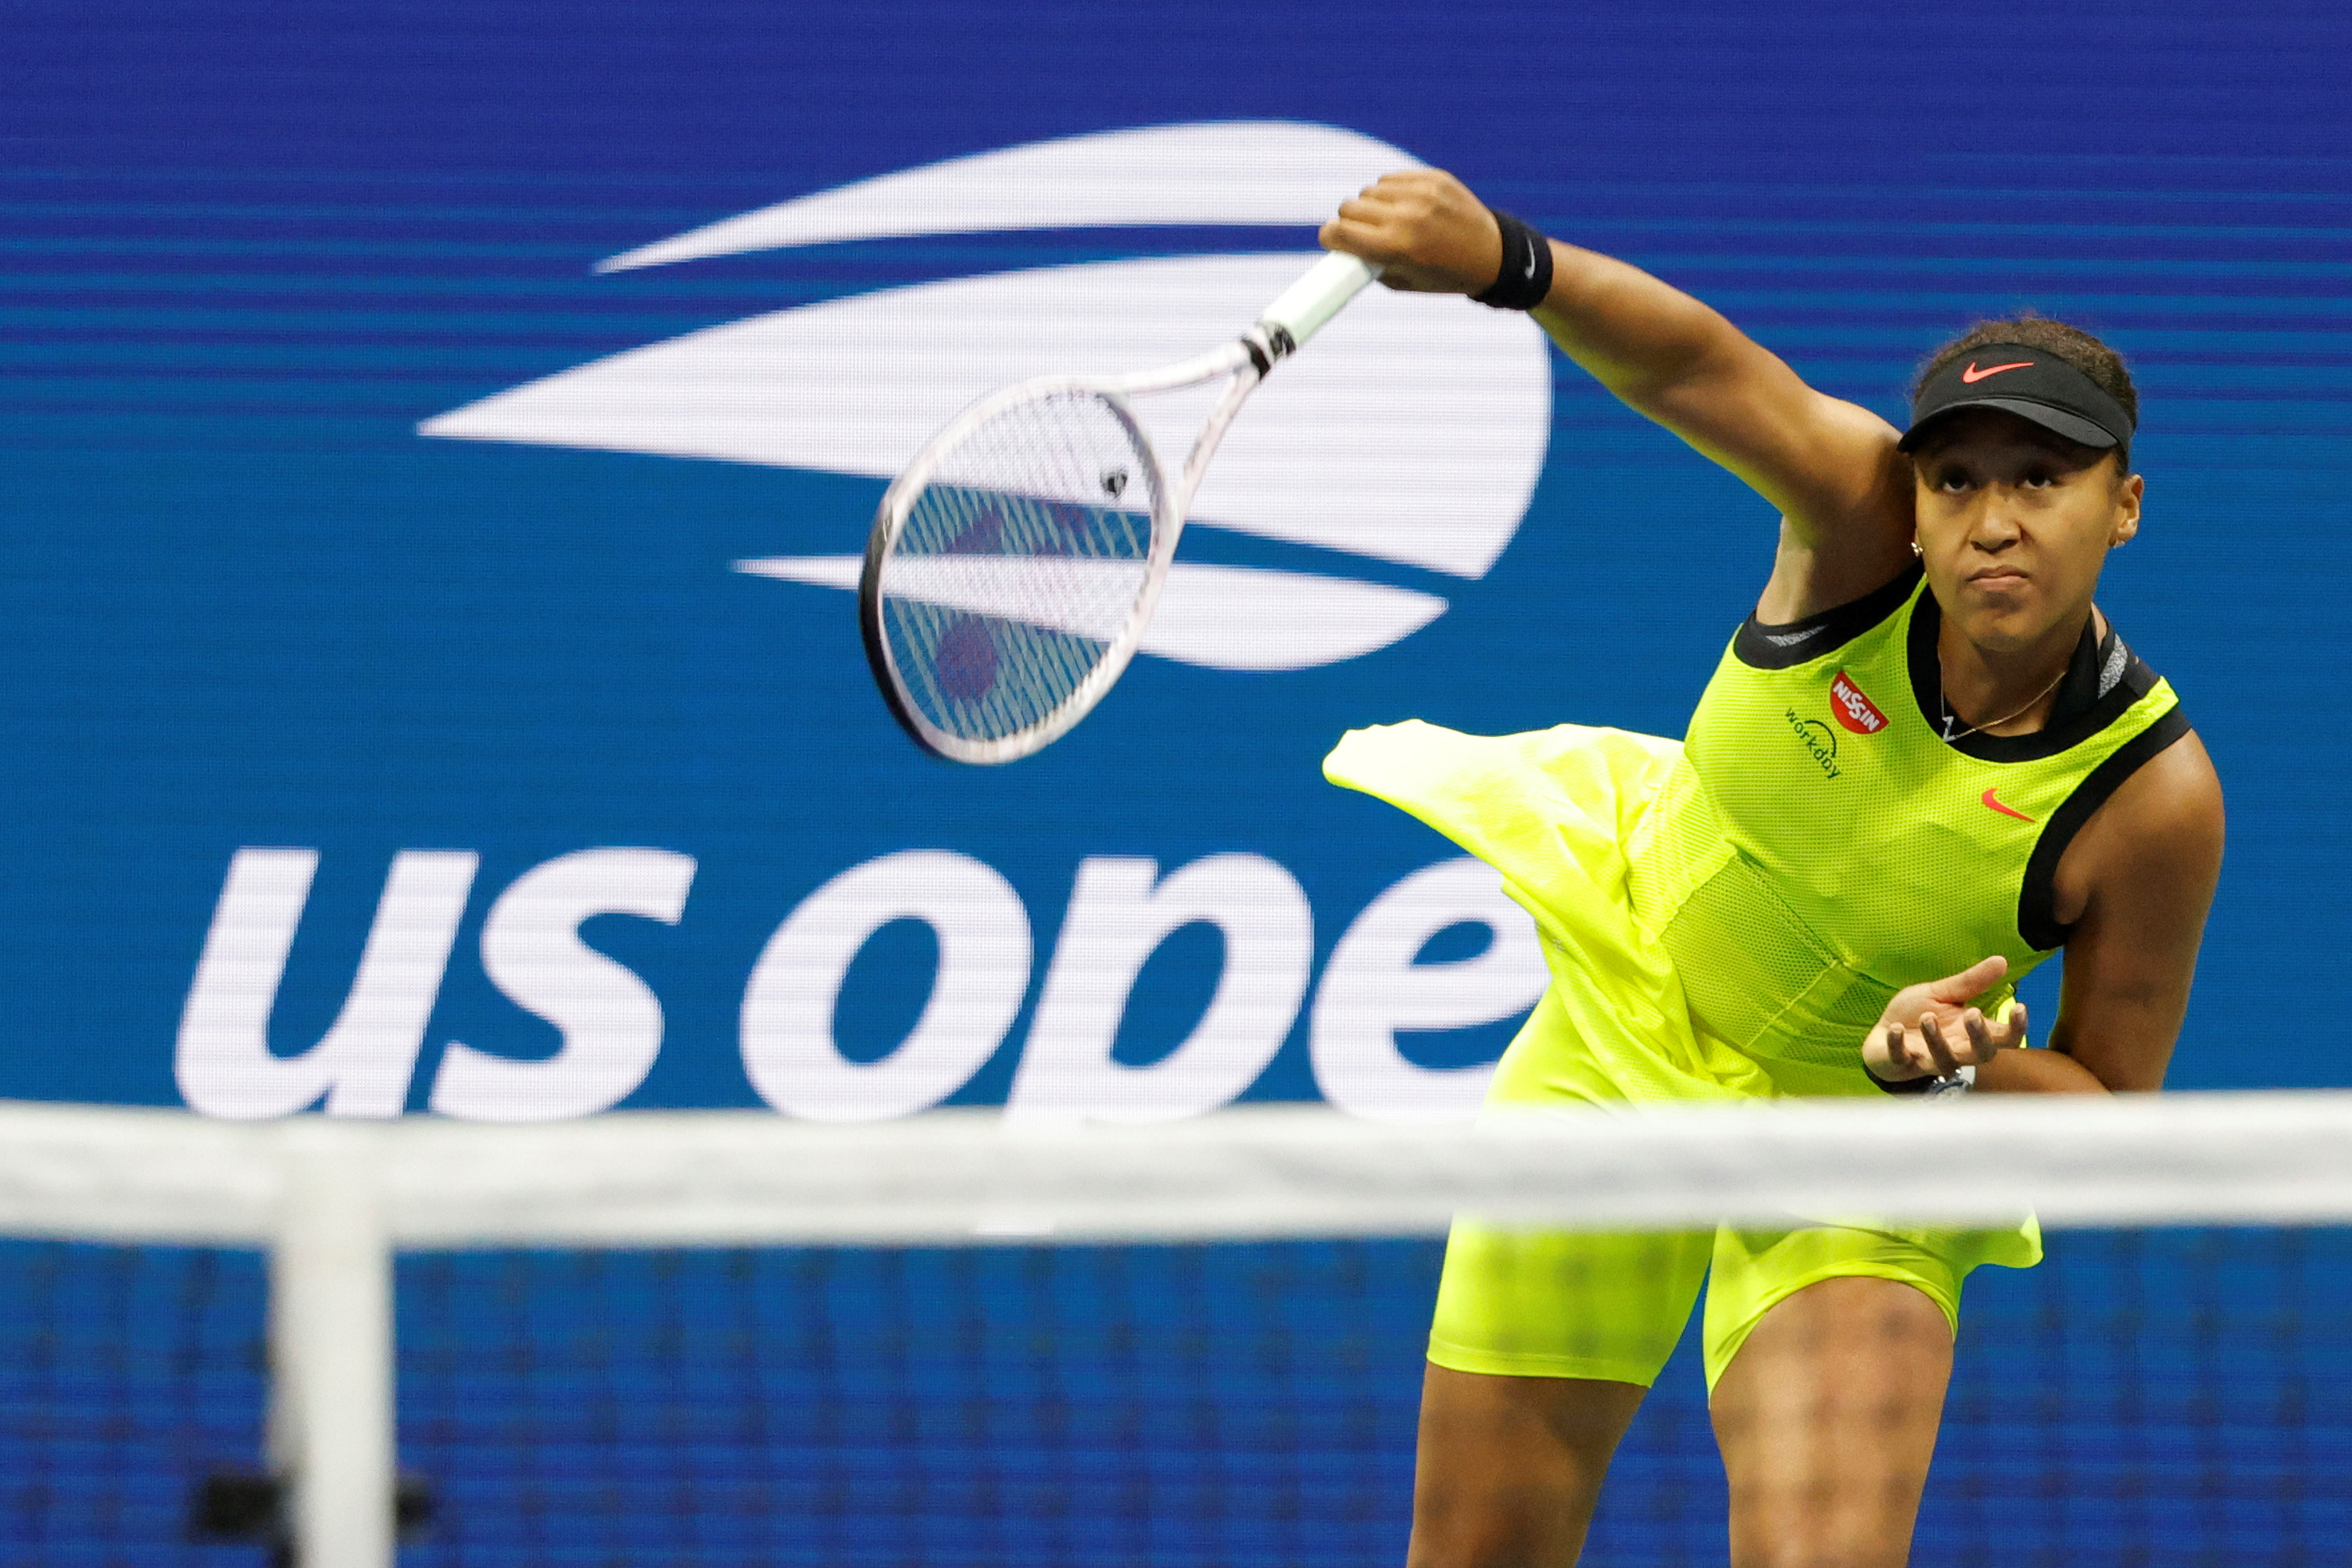 Sep 3, 2021; Flushing, NY, USA; Naomi Osaka of Japan serves against Leylah Annie Fernandez of Canada (not pictured) on day five of the 2021 U.S. Open tennis tournament at USTA Billie Jean King National Tennis Center. Mandatory Credit: Geoff Burke-USA TODAY Sports